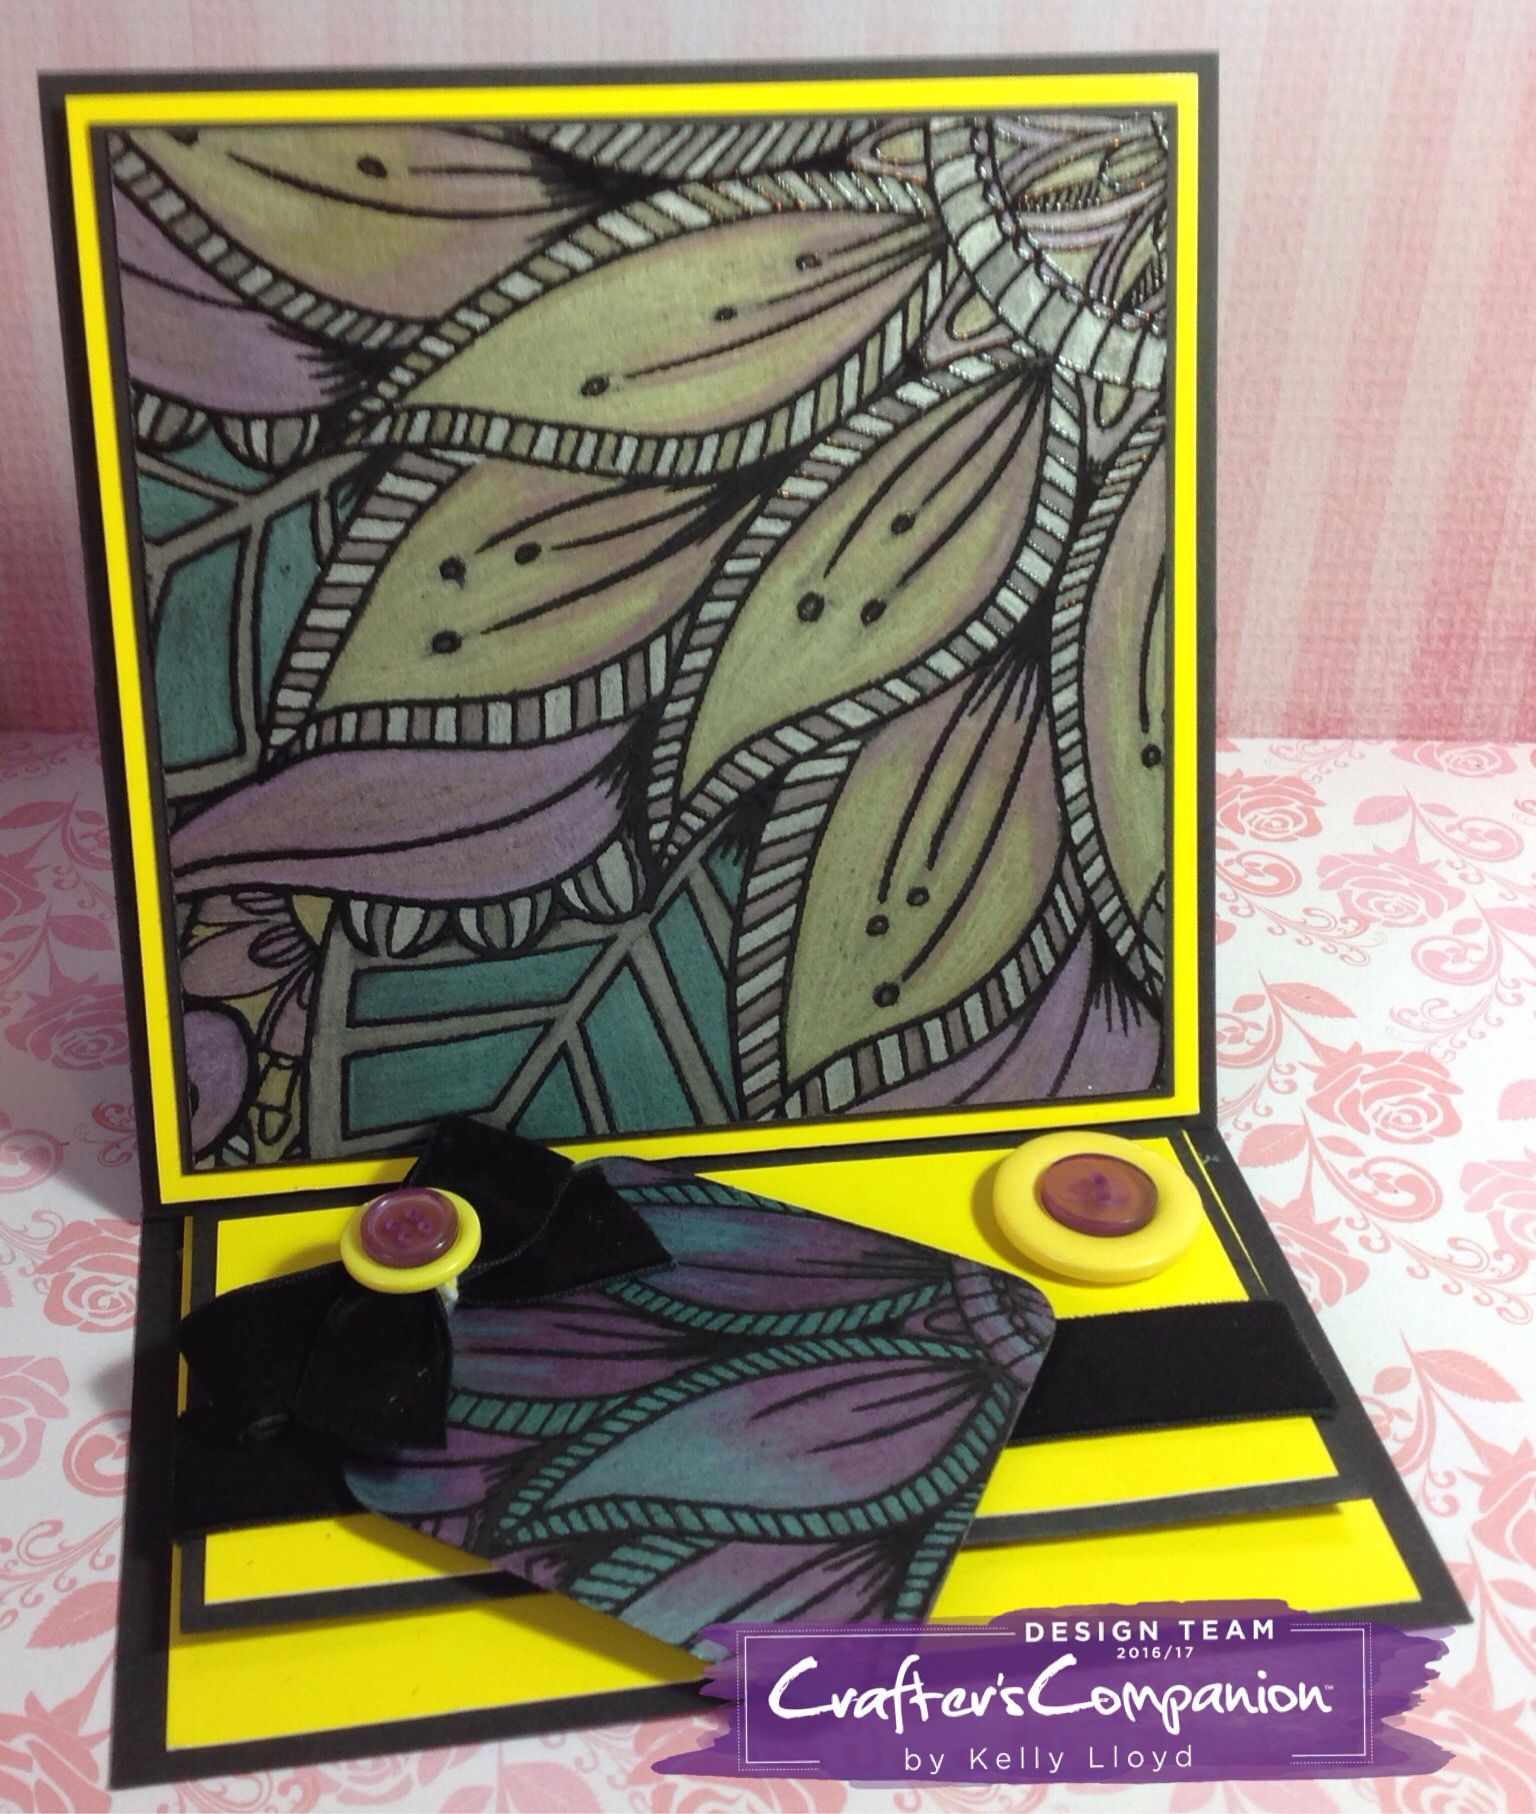 Easel card using Spectrum Noir colorista dark exquisite florals pad Coloured with spectrum noir metallic pencils. violet, pink, green, yellow, nickel and silver. Designed by Kelly Lloyd #crafterscompanion #spectrumnoir #spectrumnoircolorista #adultcolouring